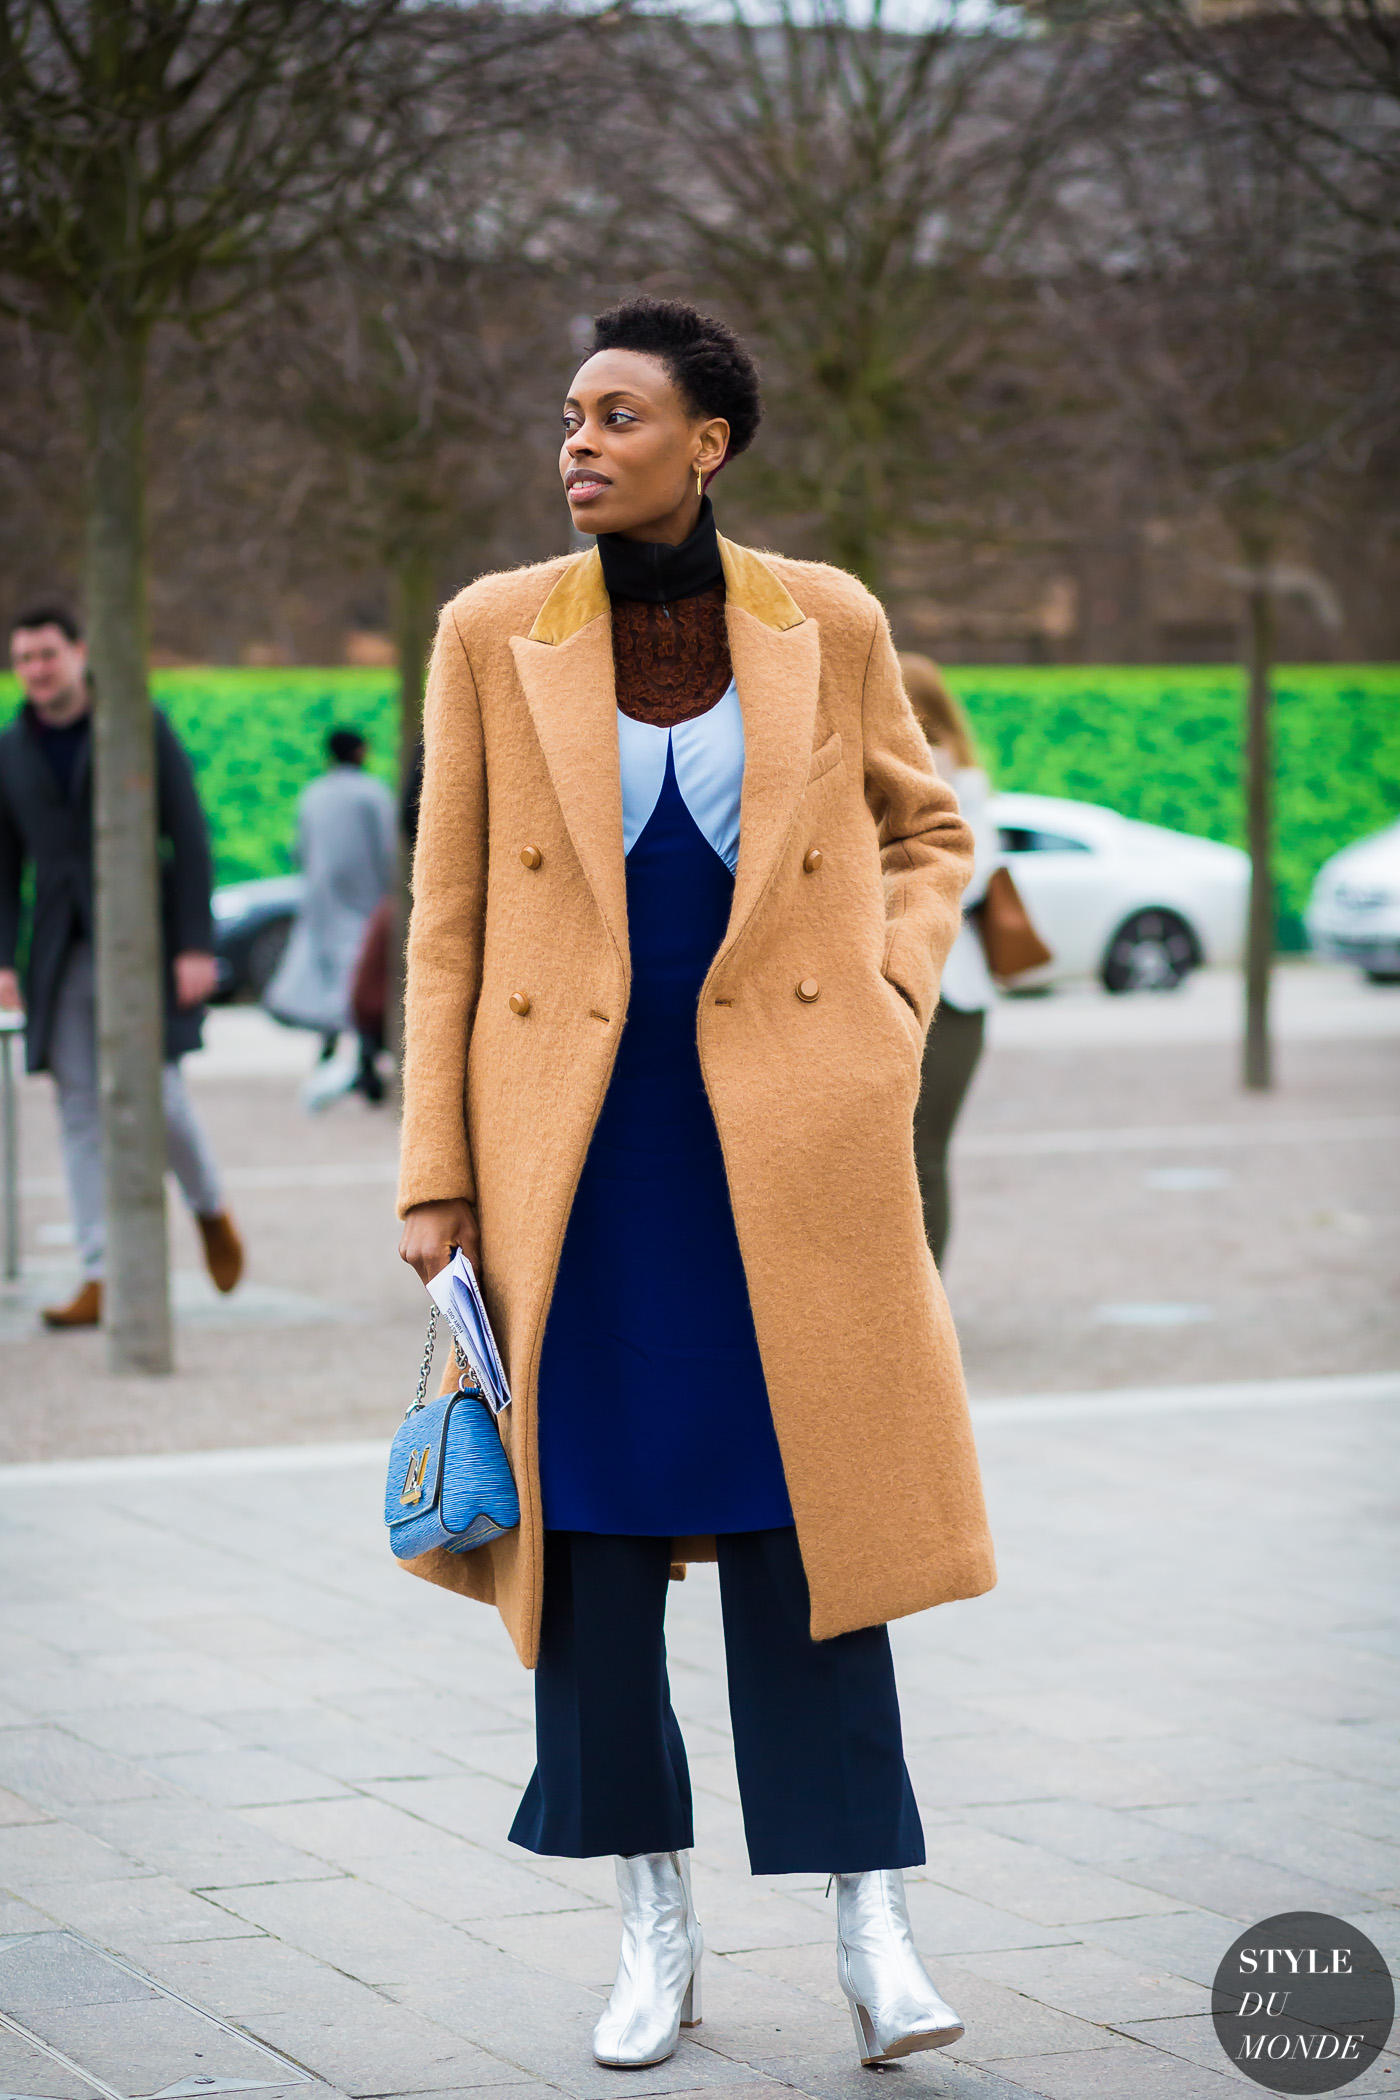 Donna Wallace Street Style Street Fashion Streetsnaps by STYLEDUMONDE Street Style Fashion Photography